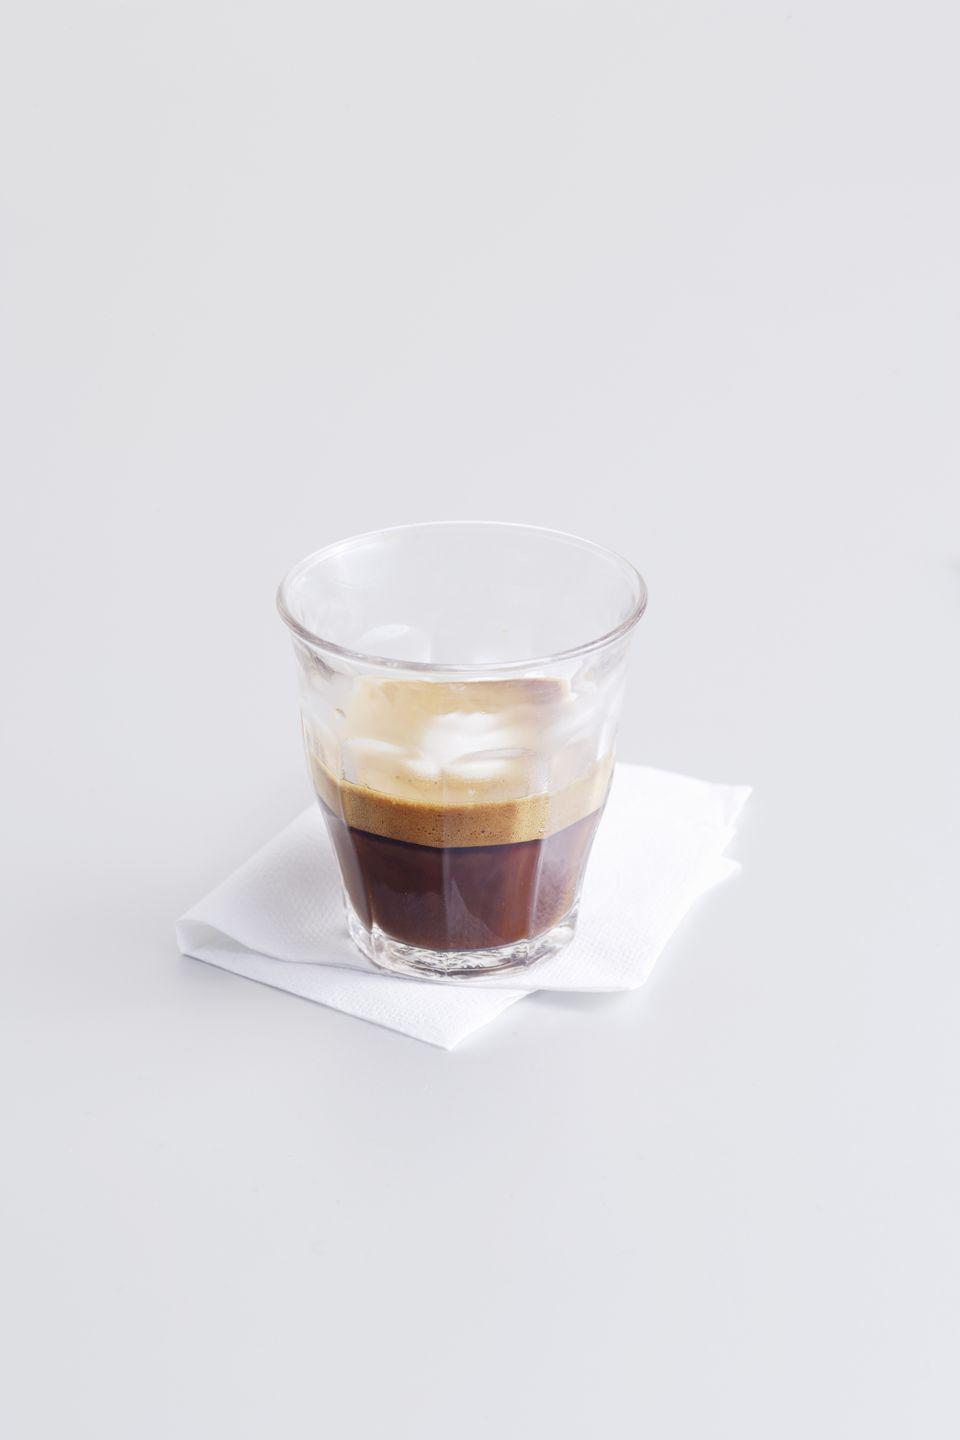 "<p>This small Italian drink is designed to be consumed in the afternoon, a counterpoint to the morning cappuccino. The name roughly translates to ""marked"" or ""stained,"" which refers to the dollop of milk foam right in the center of the beverage. </p><p><strong>Pro tip: </strong>This is the most espresso-forward of the Italian coffee drinks topped with milk.<br></p><p><em><a href=""https://go.redirectingat.com?id=74968X1596630&url=https%3A%2F%2Fwww.illy.com%2Fen-us%2Fcoffee%2Fcoffee-recipes%2Fmacchiato&sref=https%3A%2F%2Fwww.goodhousekeeping.com%2Ffood-recipes%2Fg35012036%2Fbest-coffee-recipes%2F"" rel=""nofollow noopener"" target=""_blank"" data-ylk=""slk:Get the recipe for Macchiato from Illy »"" class=""link rapid-noclick-resp"">Get the recipe for Macchiato from Illy » </a></em></p>"